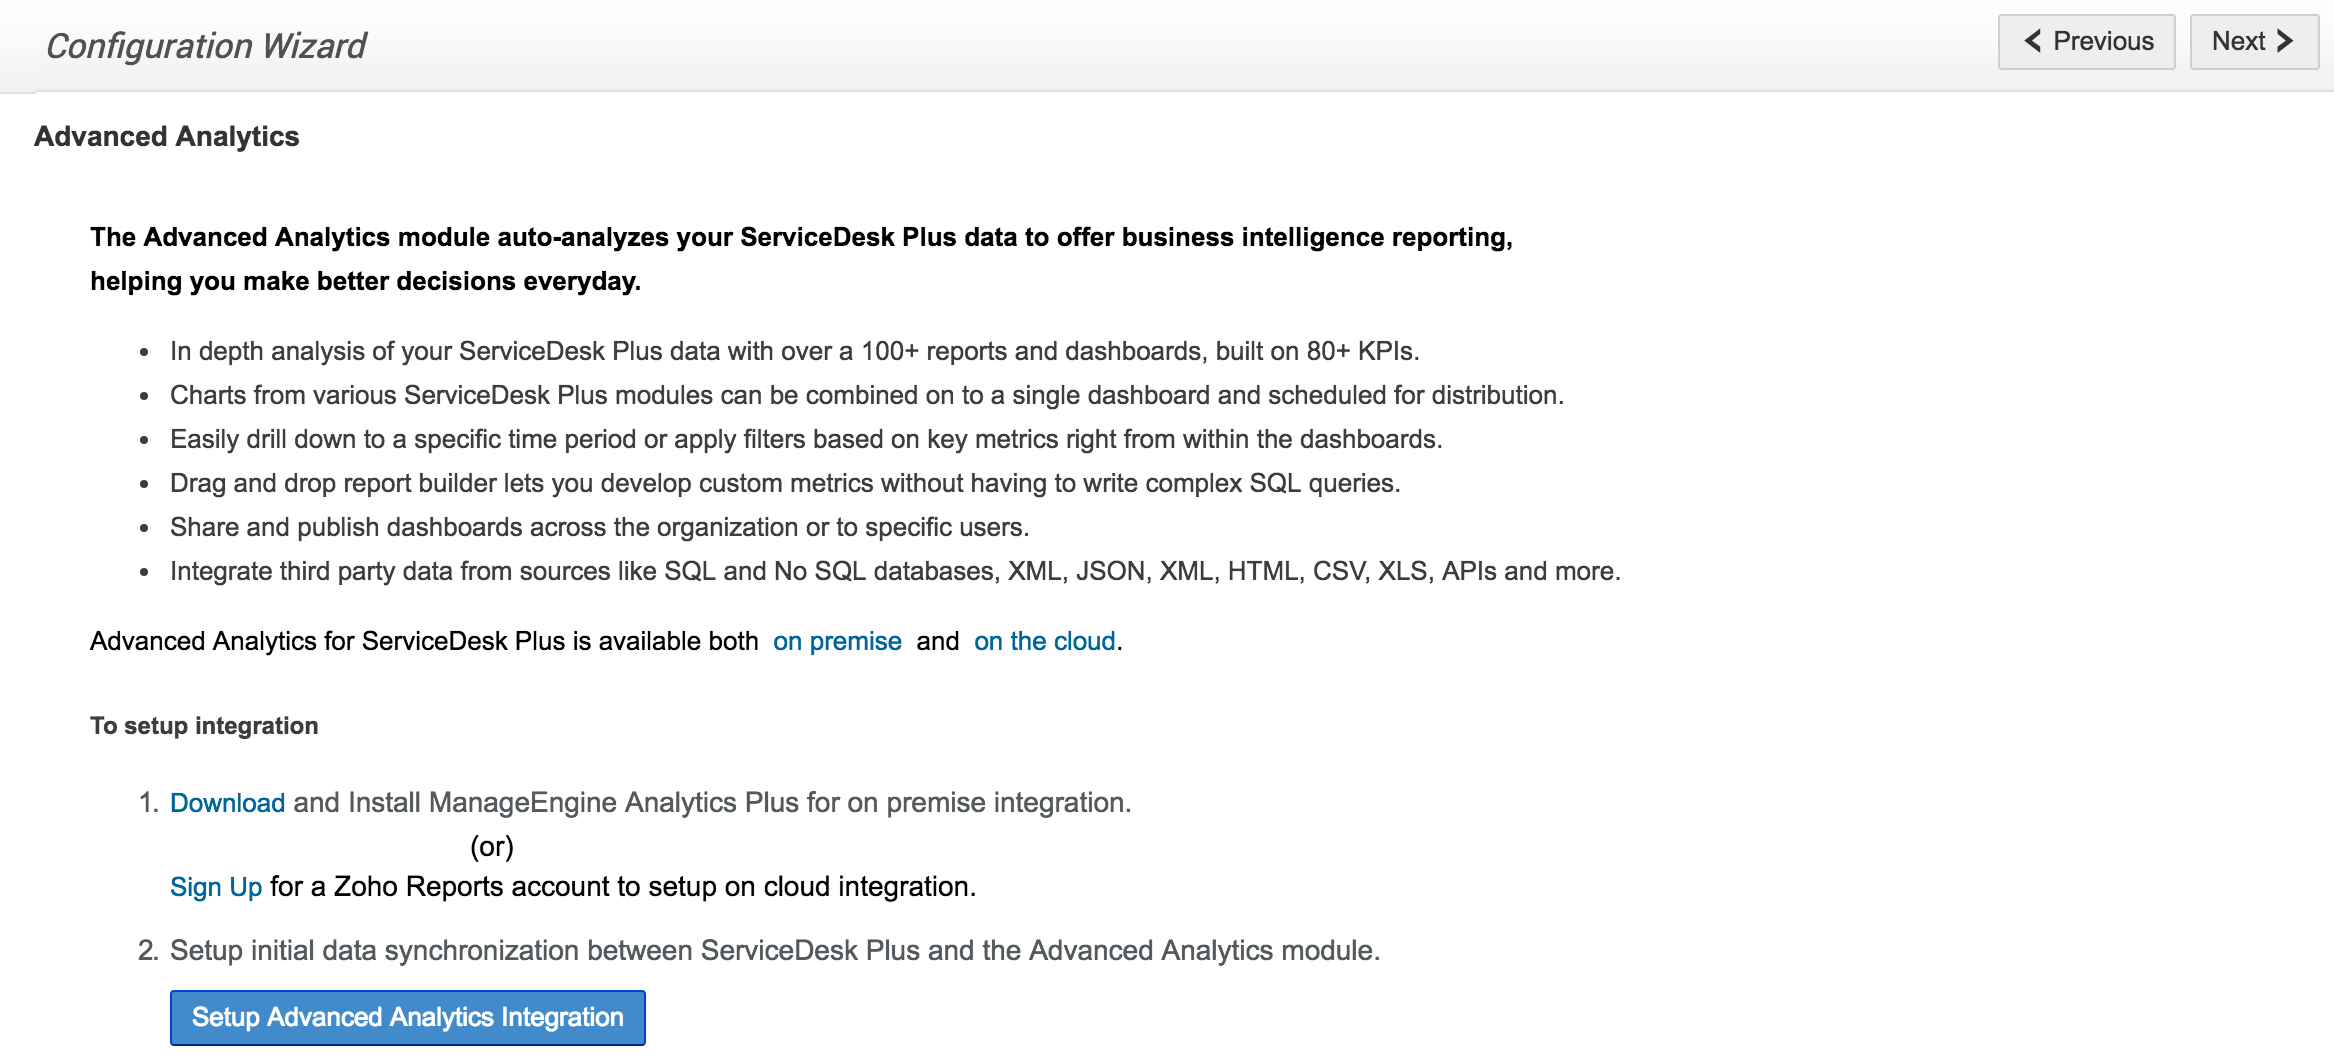 ManageEngine analytics plus | Zoho reports integration - SDP help desk guide